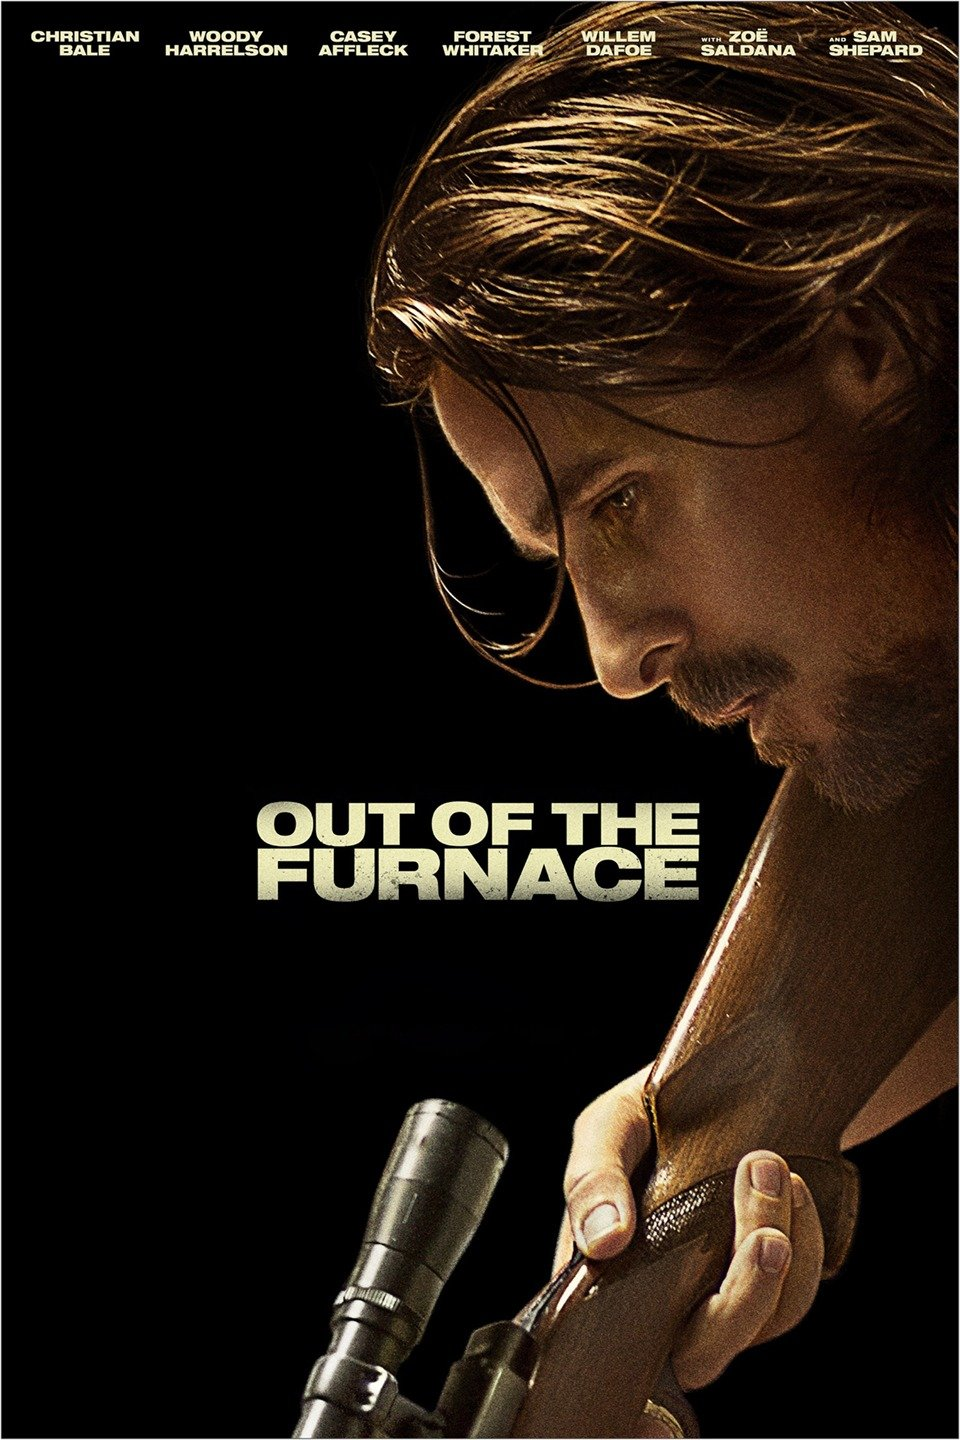 Out of the Furnace 2013 Dual Audio Hindi Bluray Movie Download